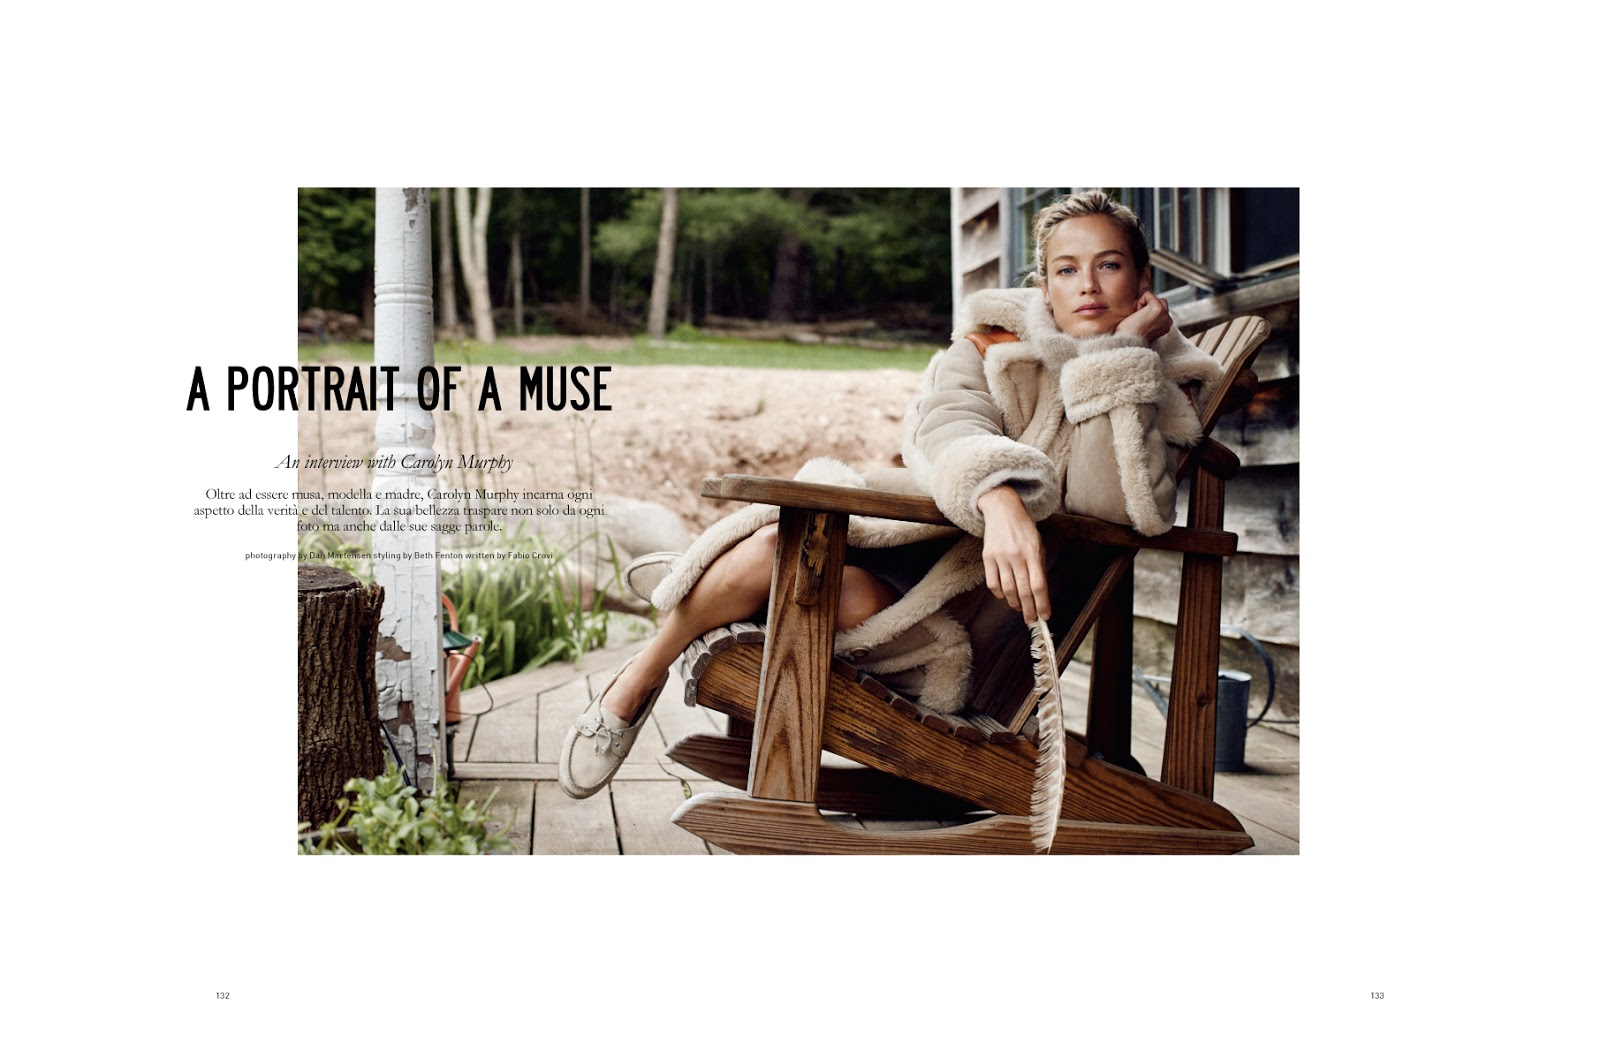 a portrait of a muse carolyn murphy by dan martensen for muse  make up chiho omae frankreps